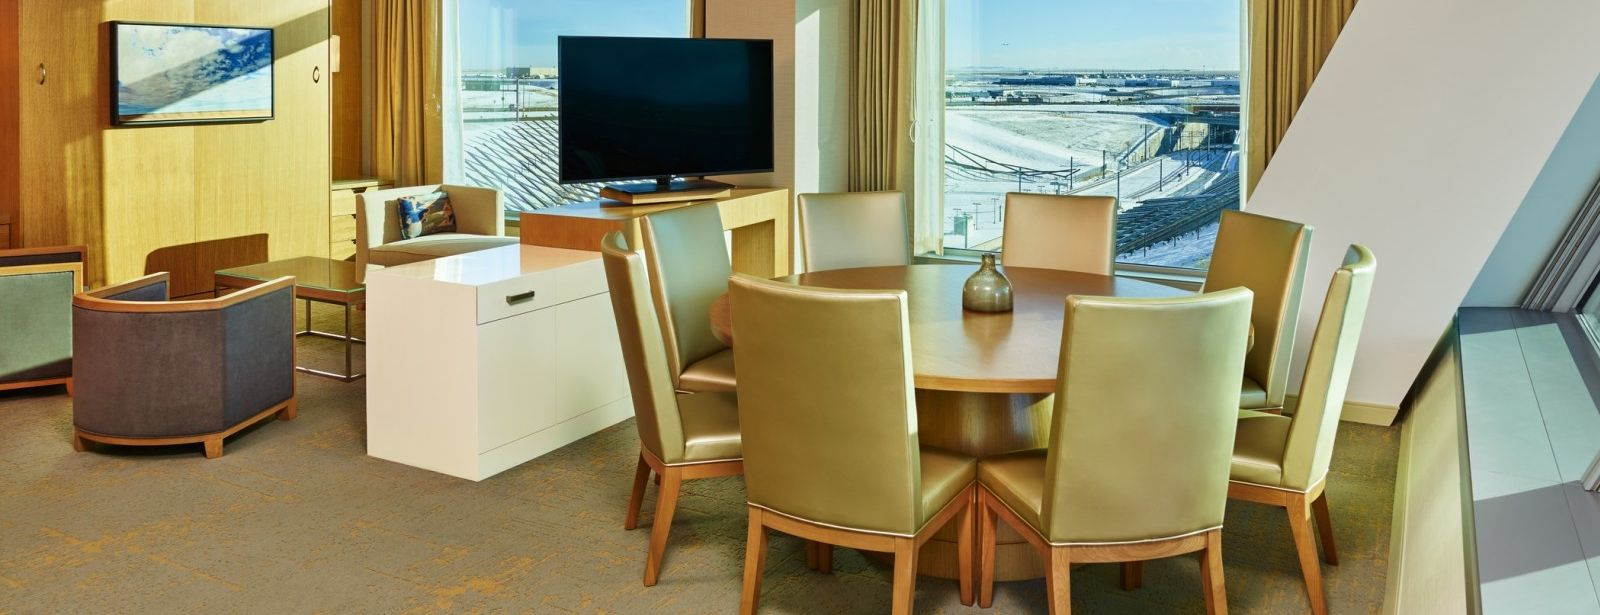 Denver Airport Lodging - Hospitality Suite - The Westin Denver International Airport